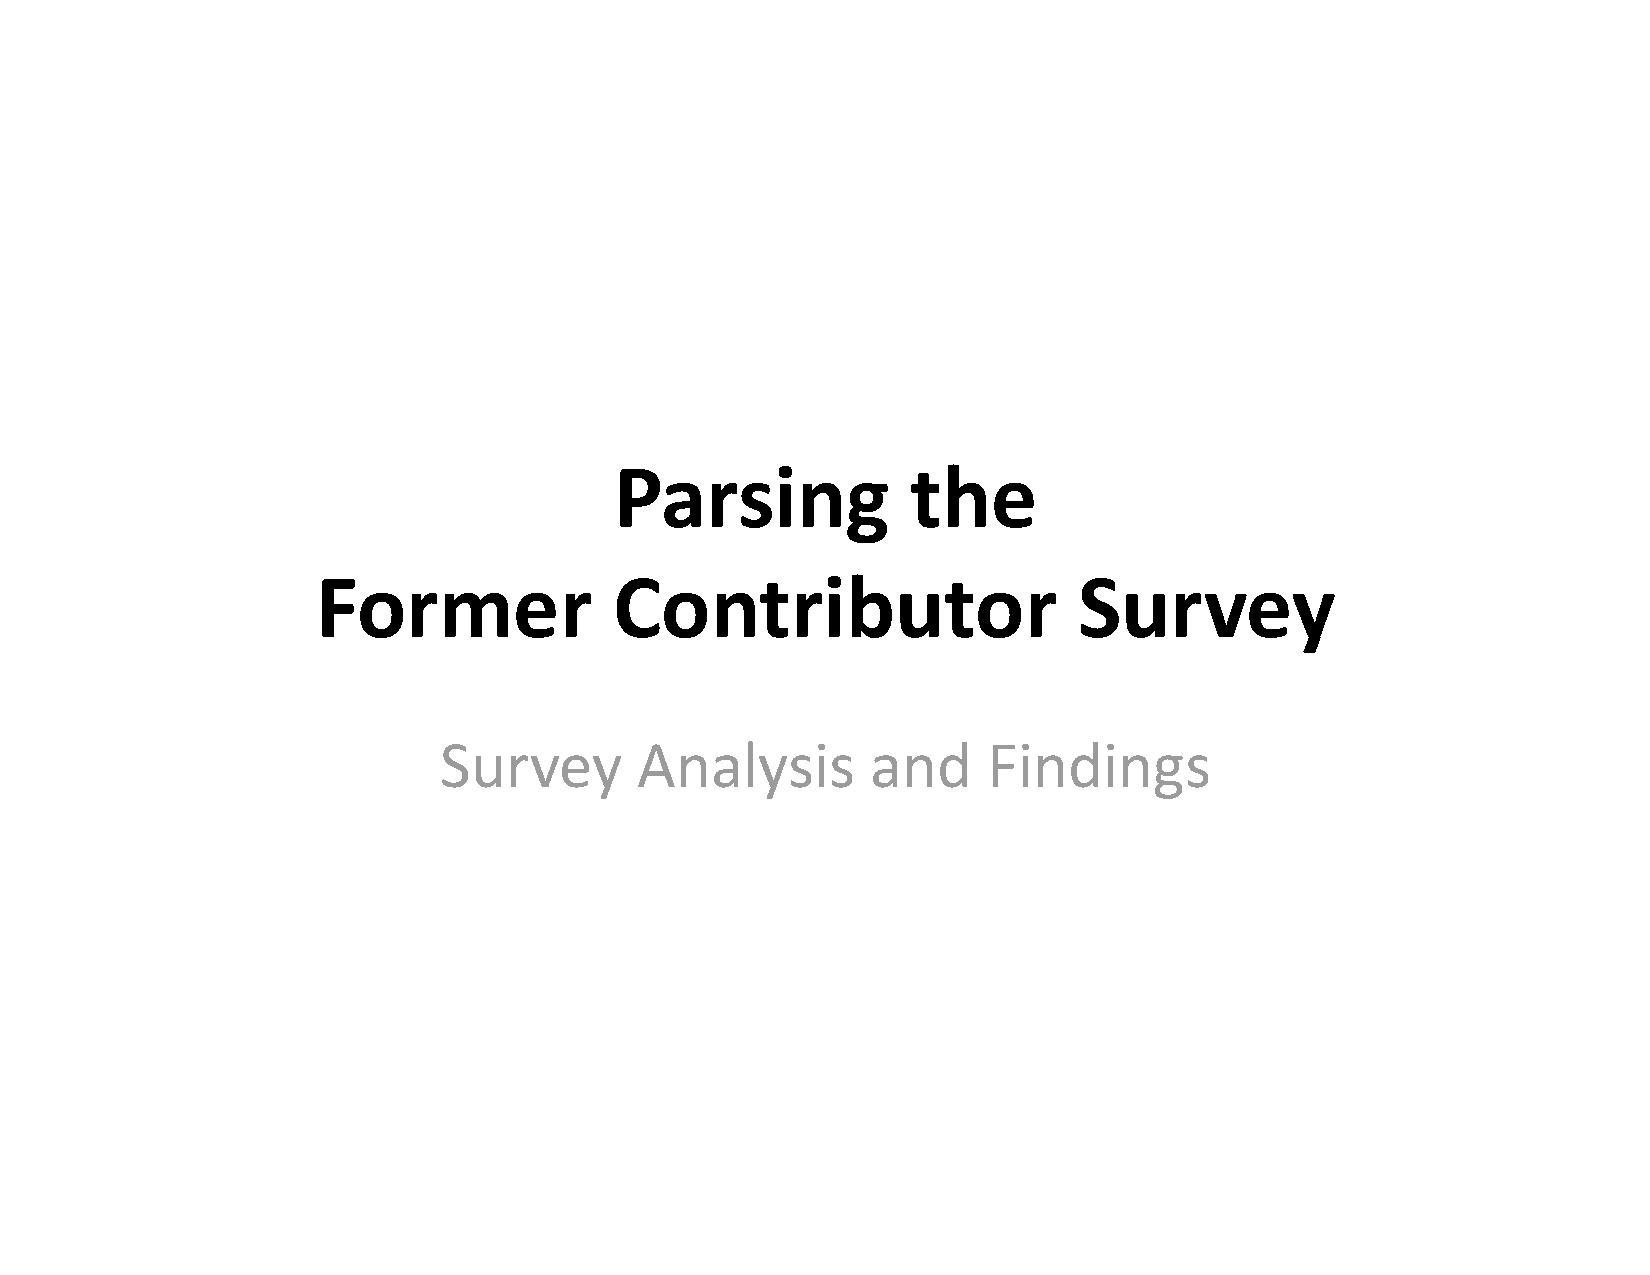 Parsing the Former Contributor Survey.pdf